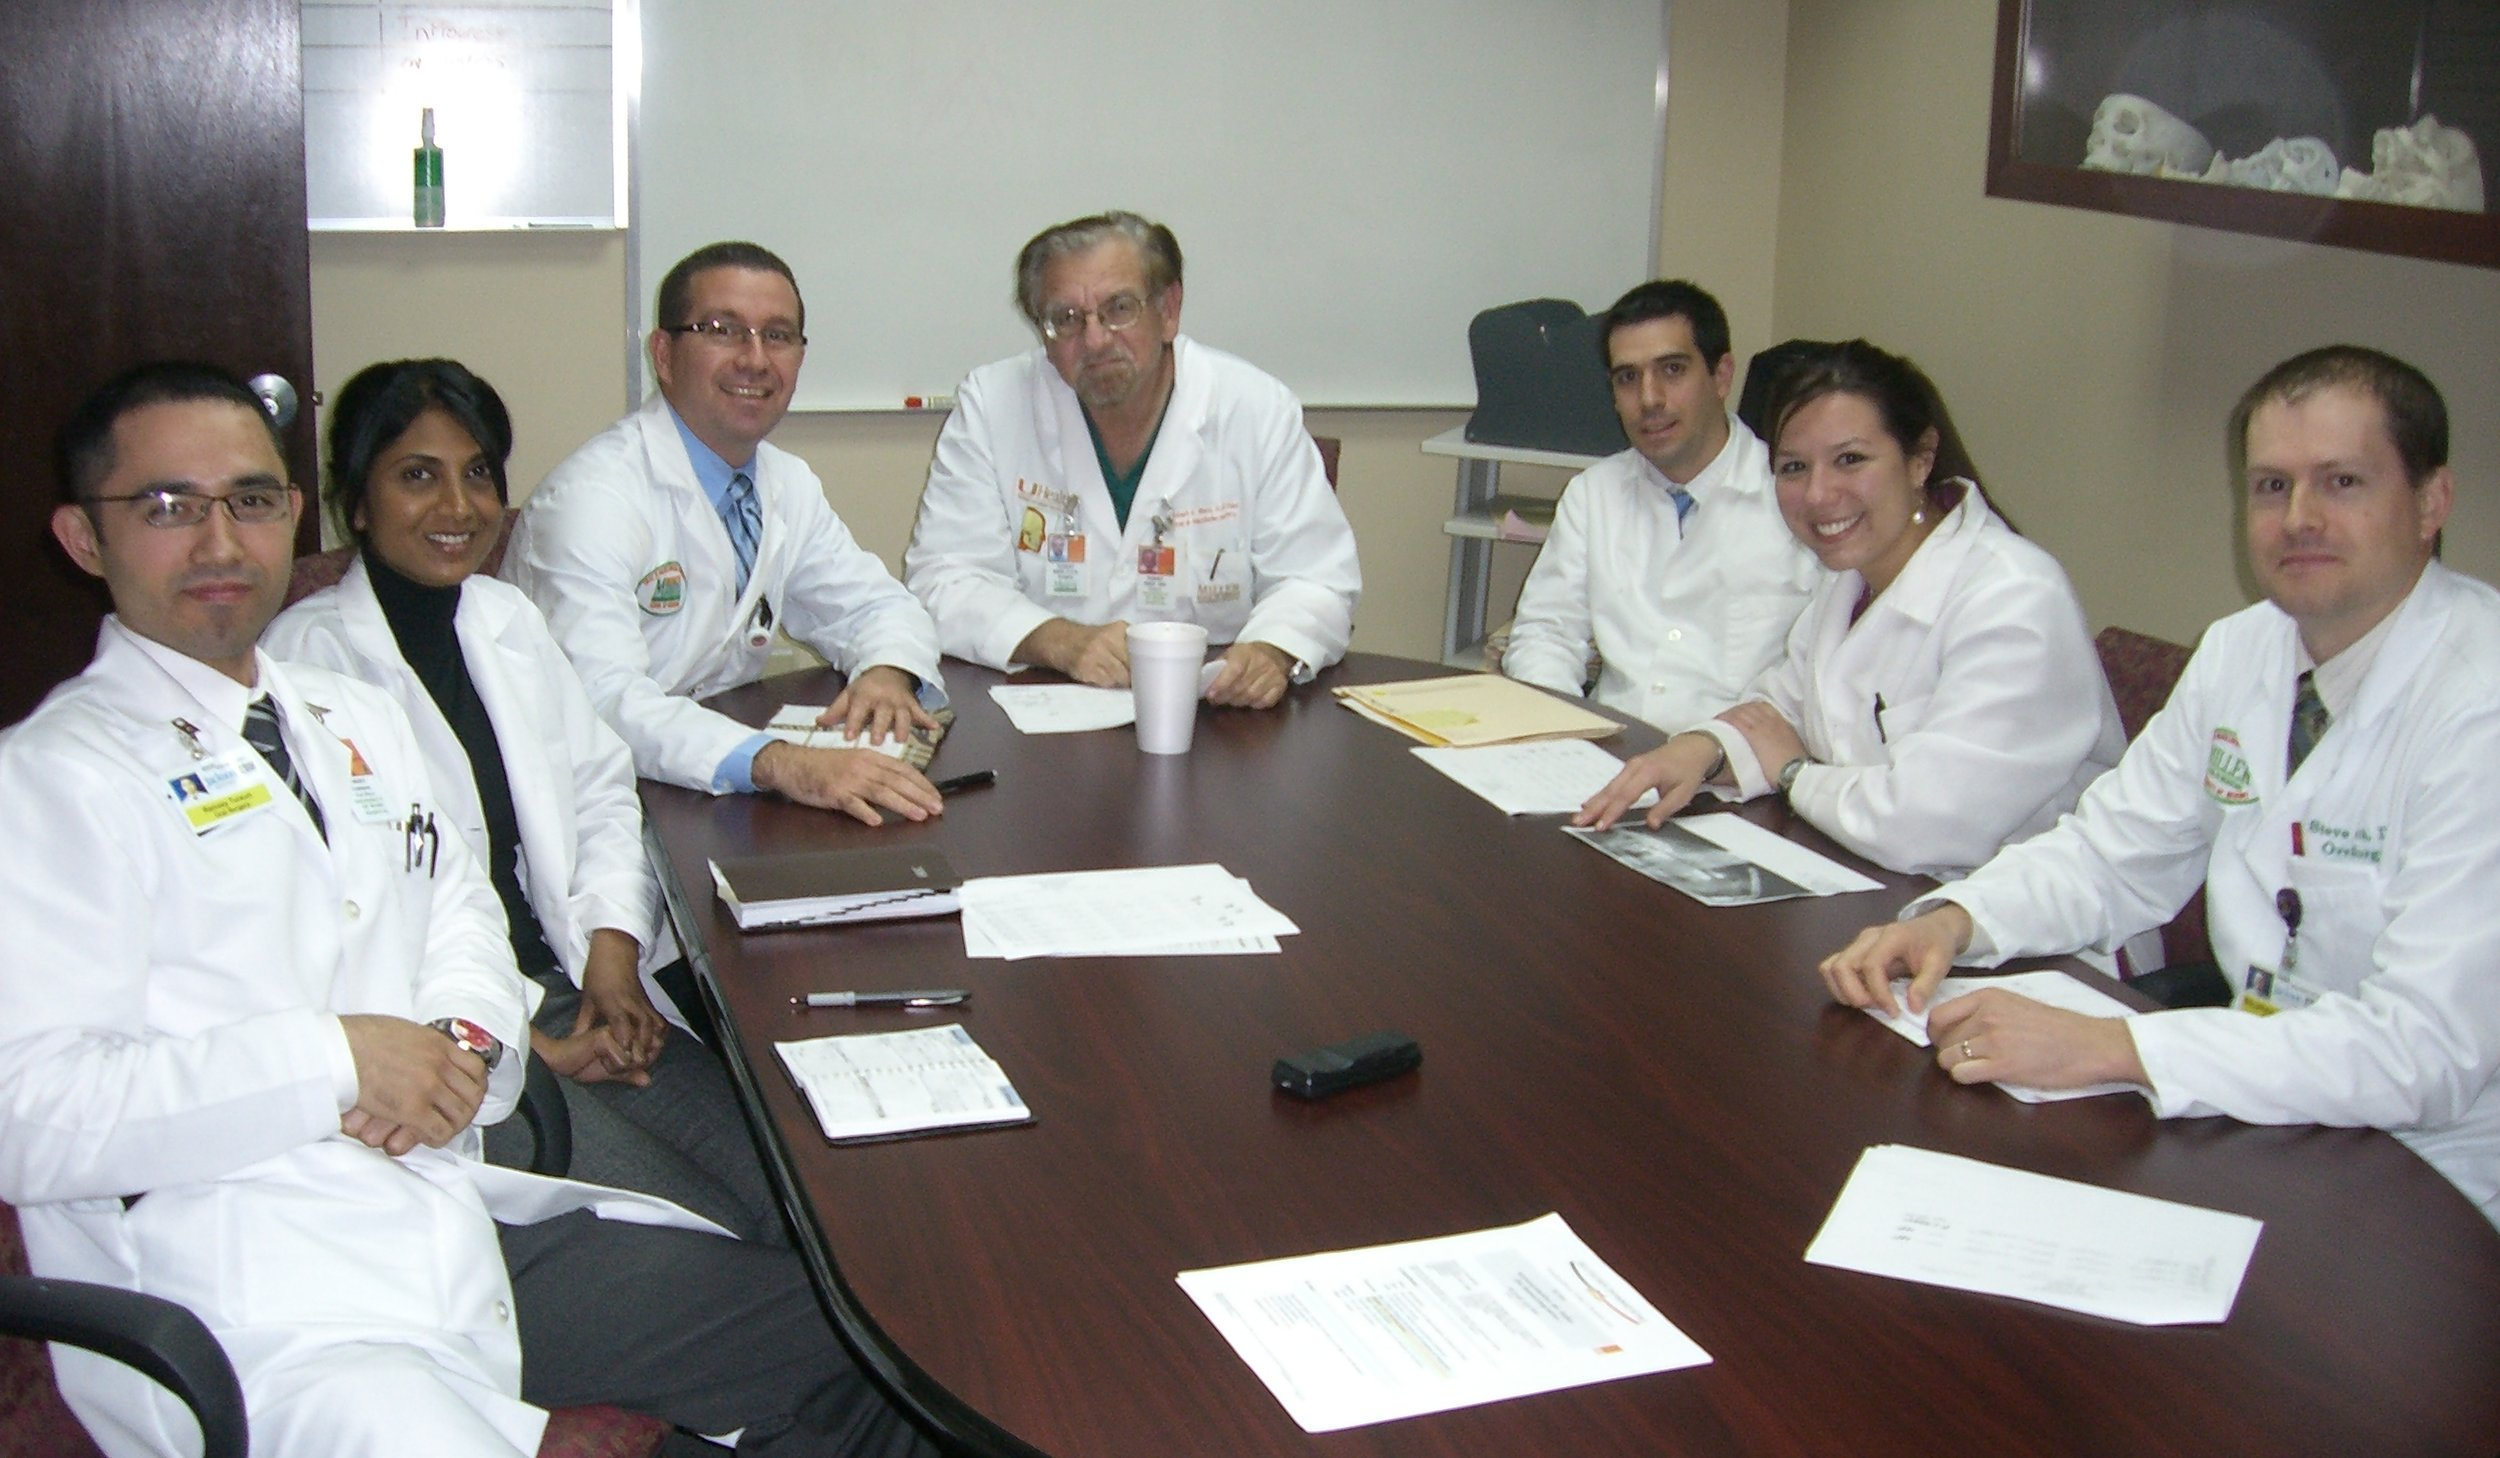 Dr. Johanny Caceres in a case discussion with Professor Robert Marx and other residents.